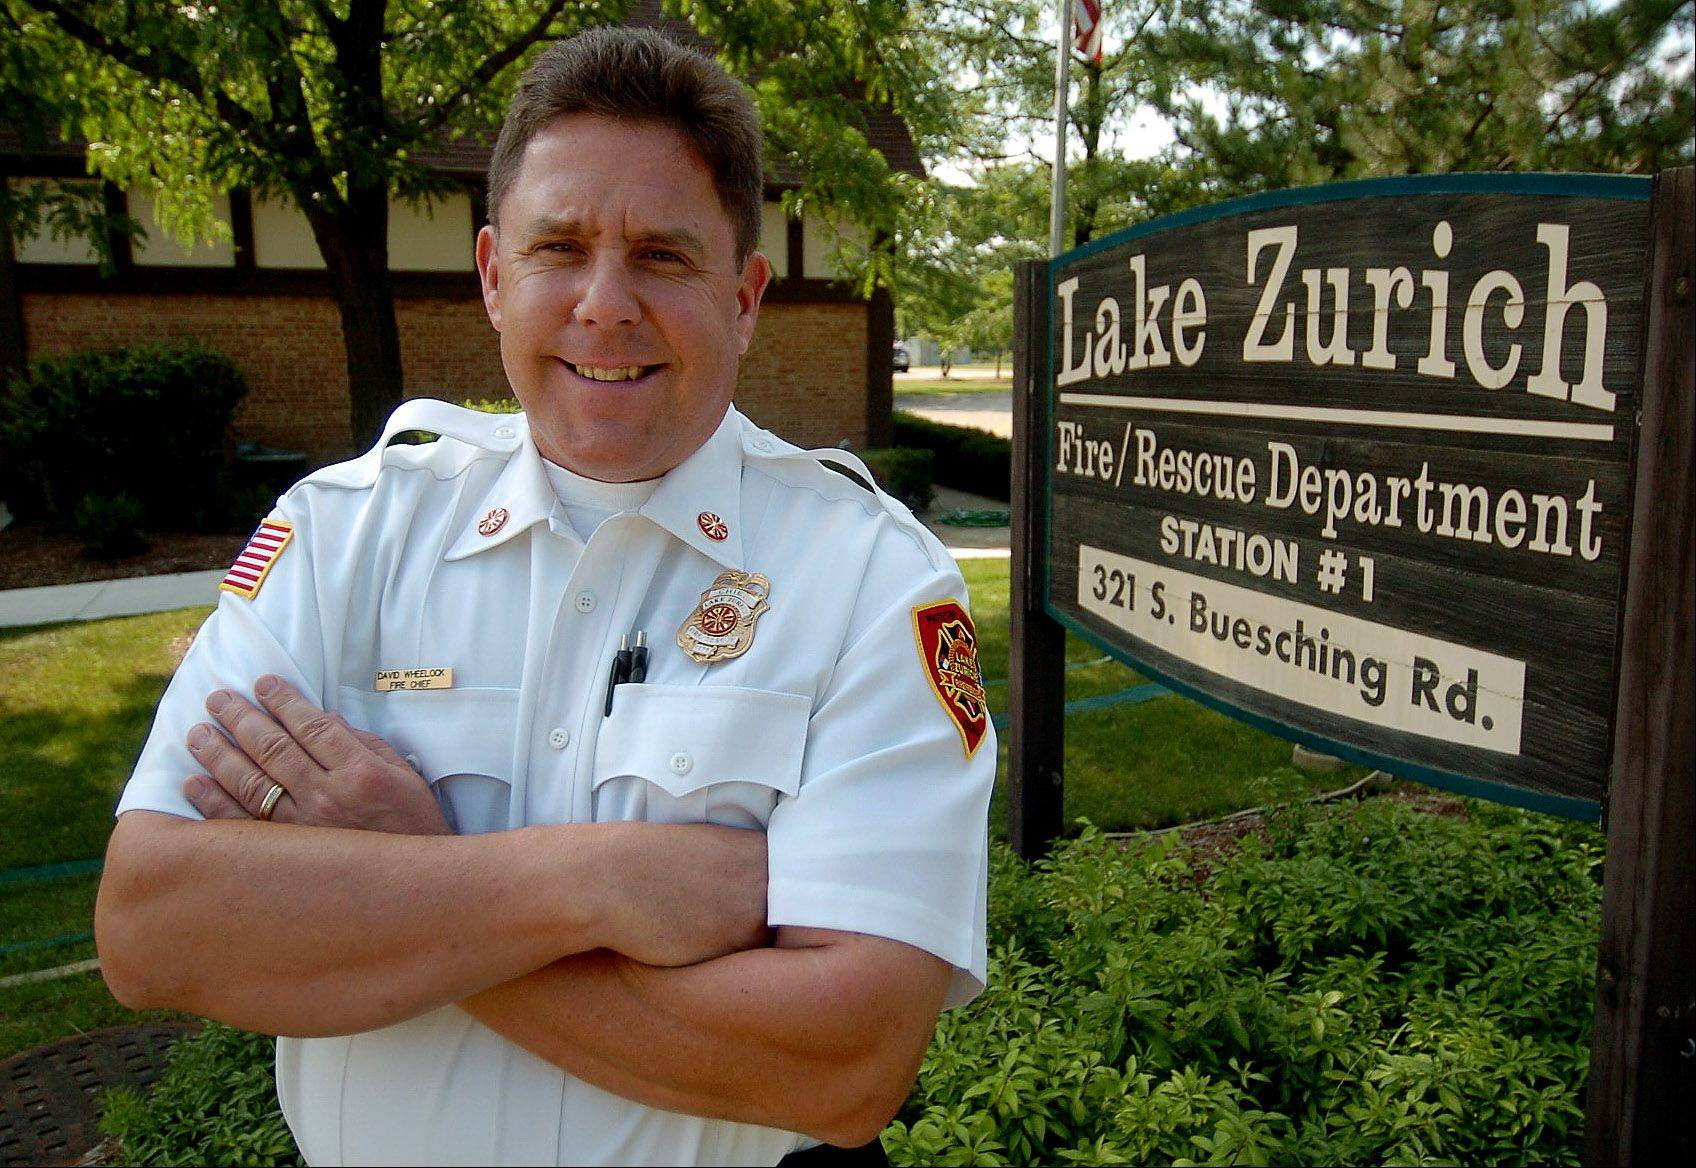 Wheelock sworn in as new Lake Zurich fire chief